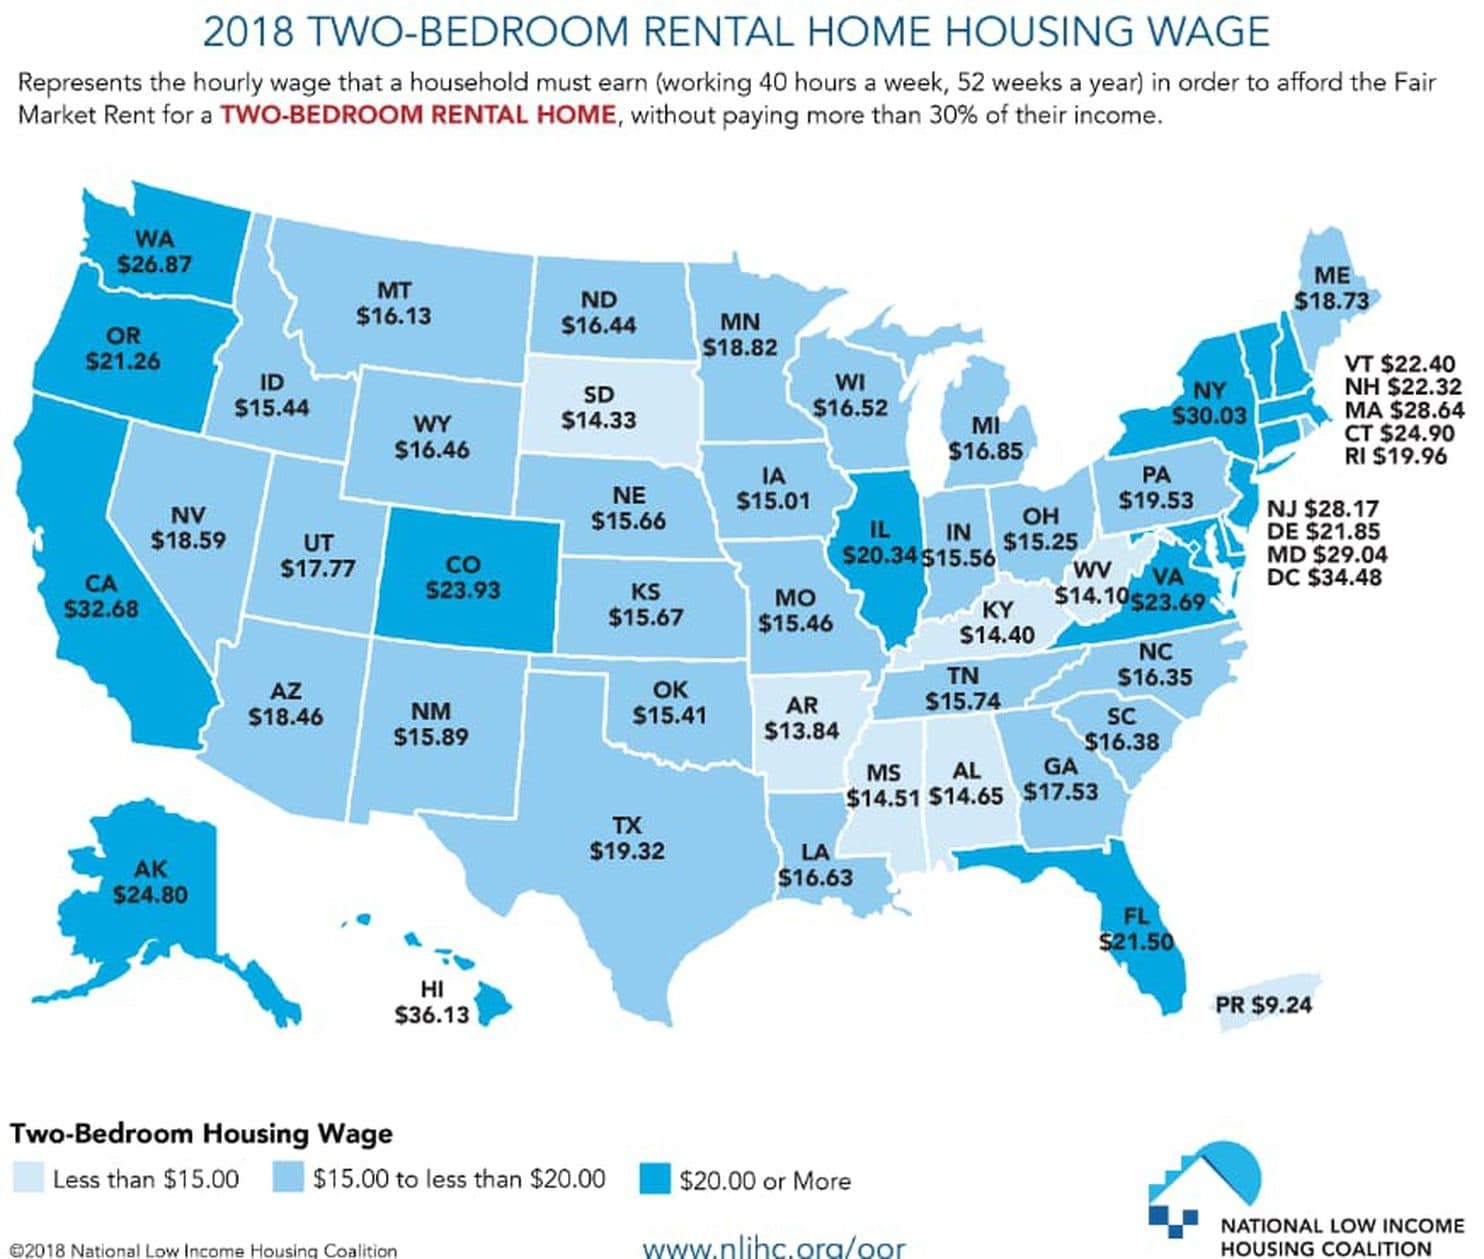 Full time minimum wage workers can't afford the rent on a 2